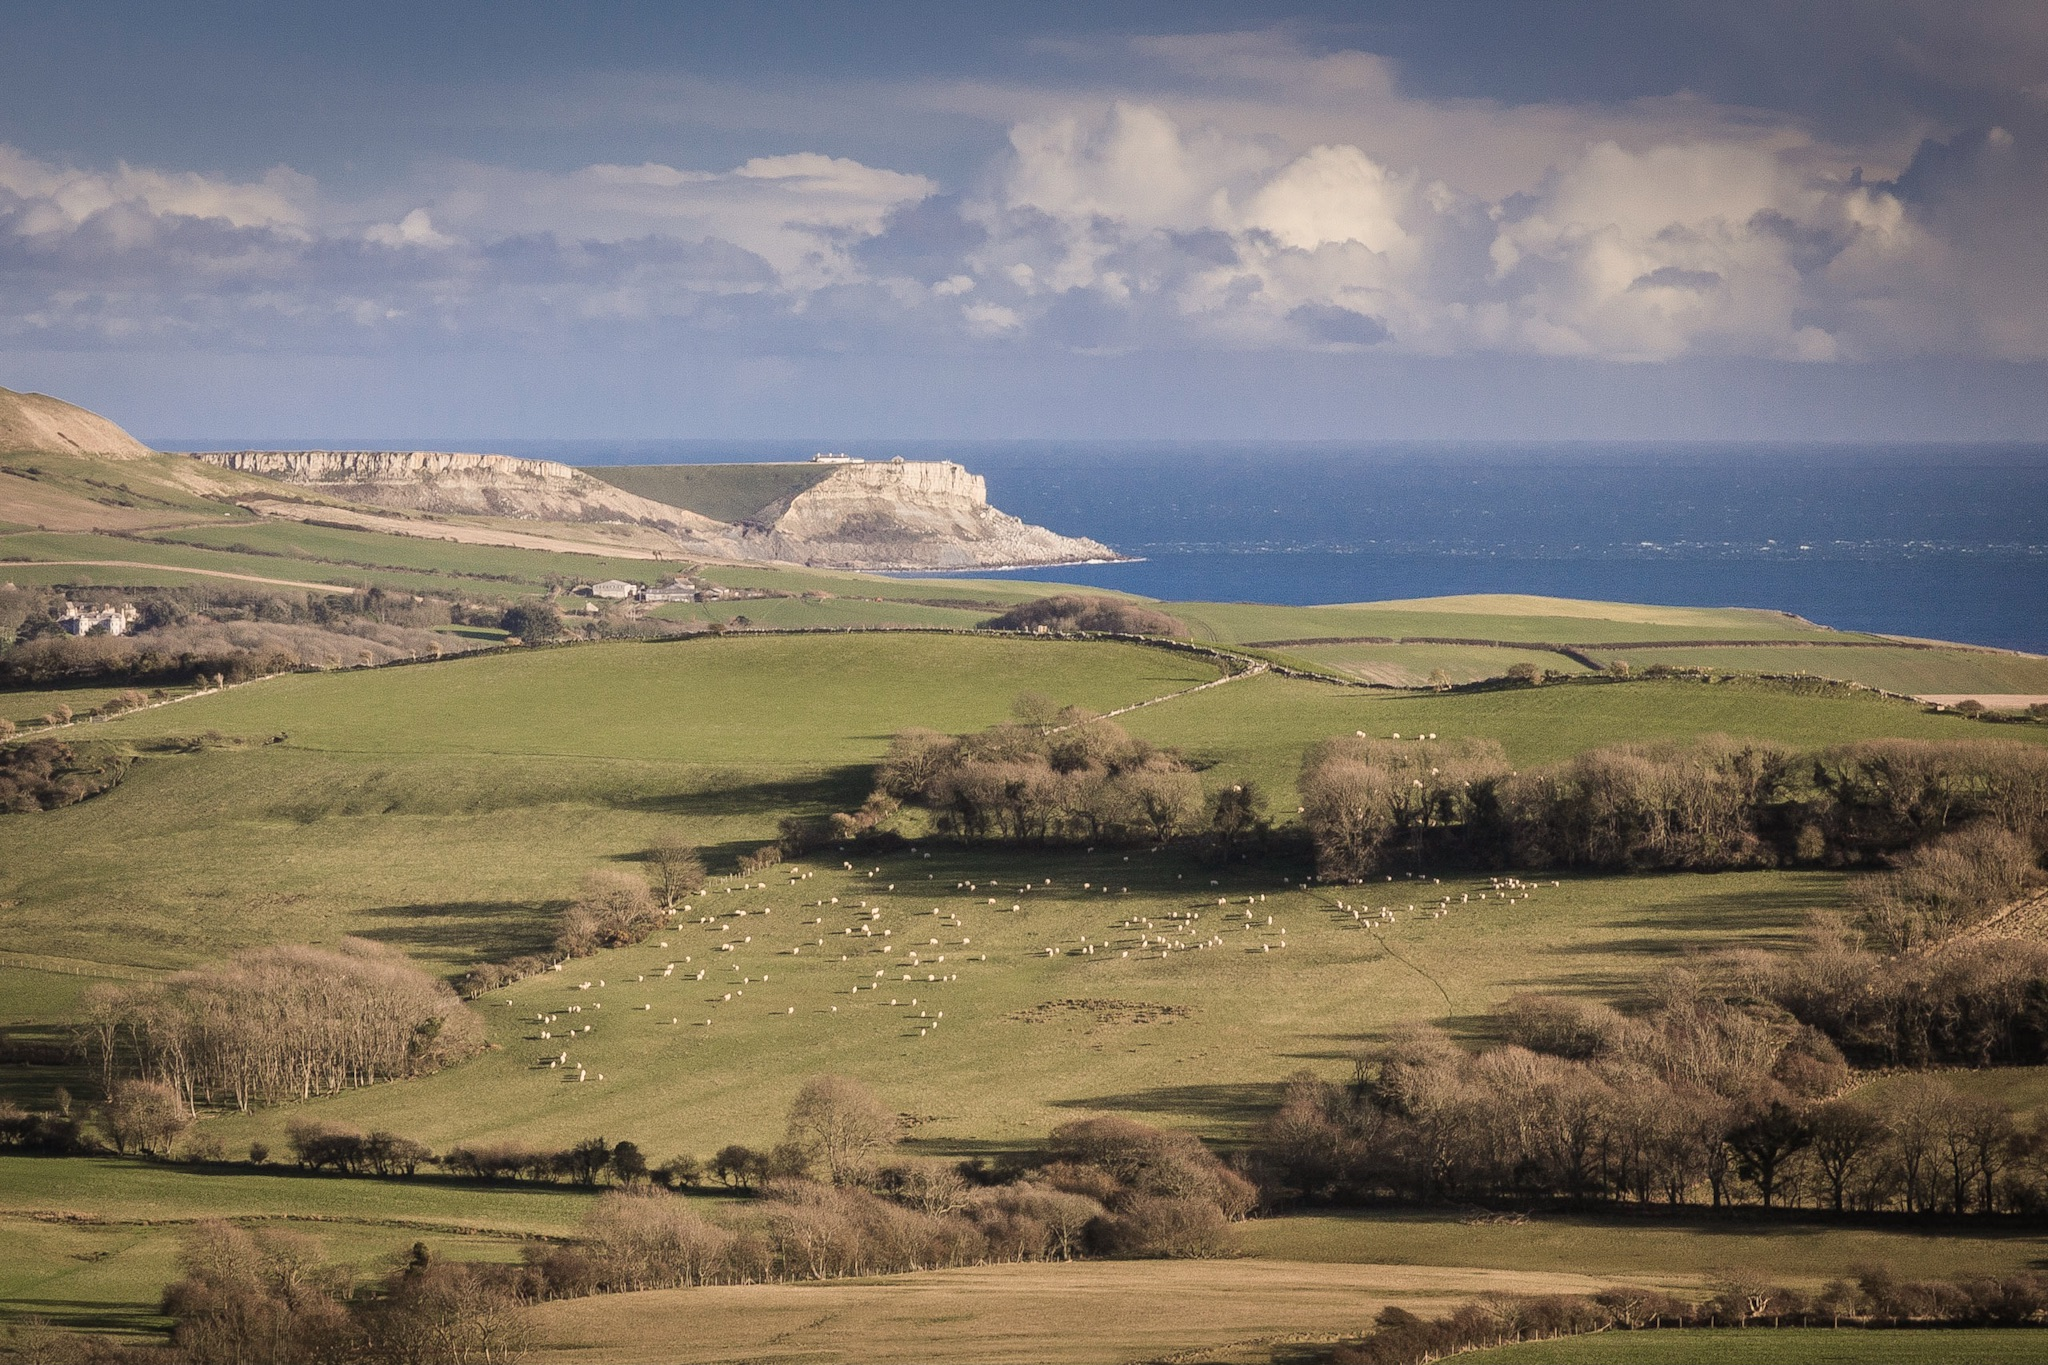 The view of the Purbecks and the cliffs beyond Kimmeridge Bay